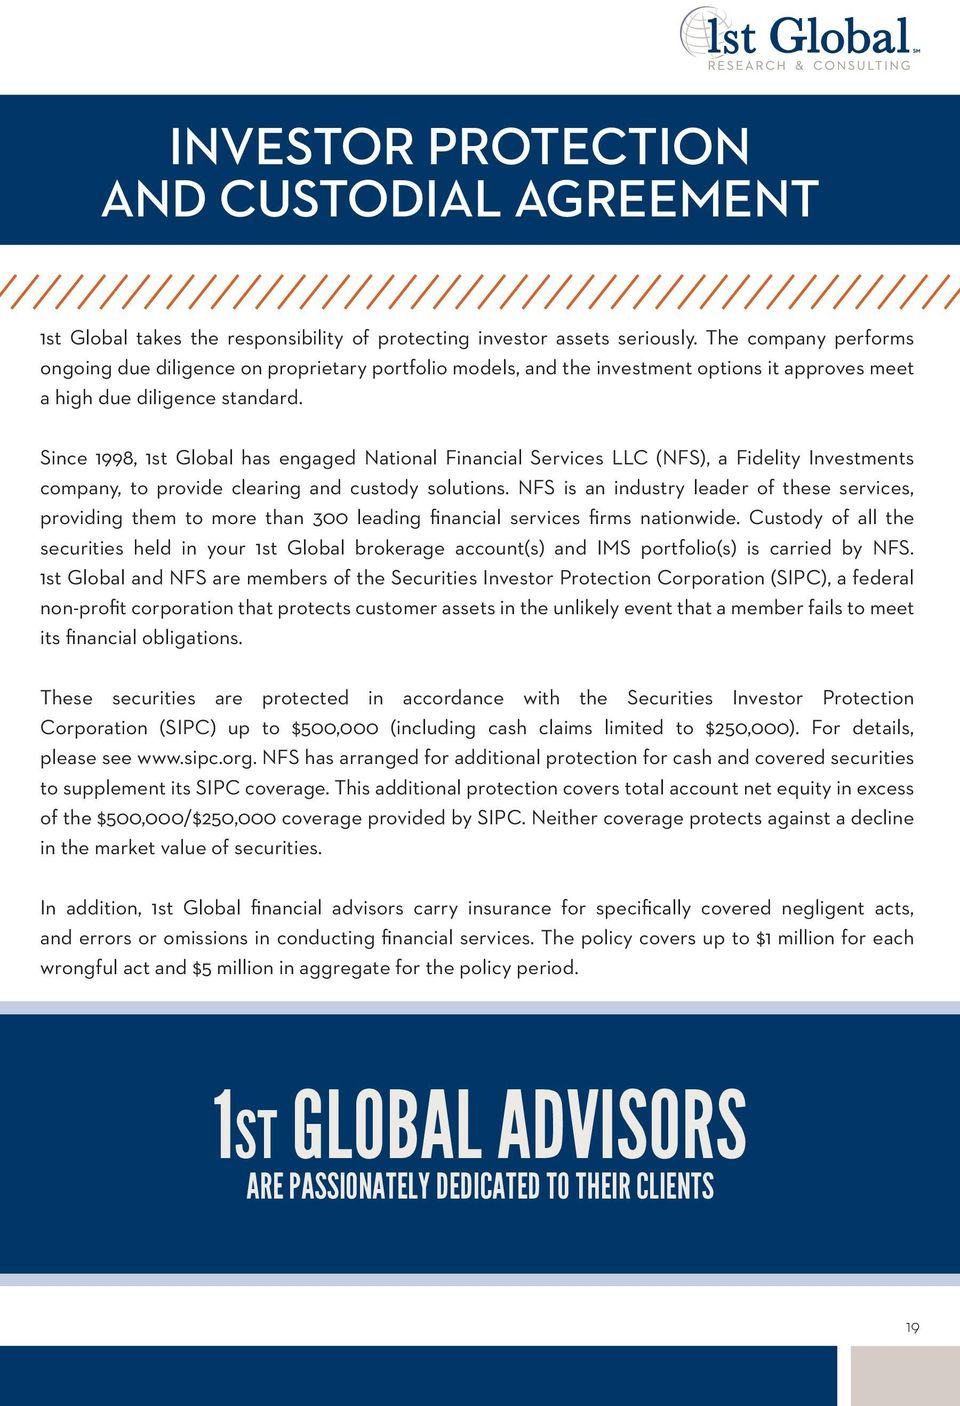 Since 1998, 1st Global has engaged National Financial Services LLC (NFS), a Fidelity Investments company, to provide clearing and custody solutions.